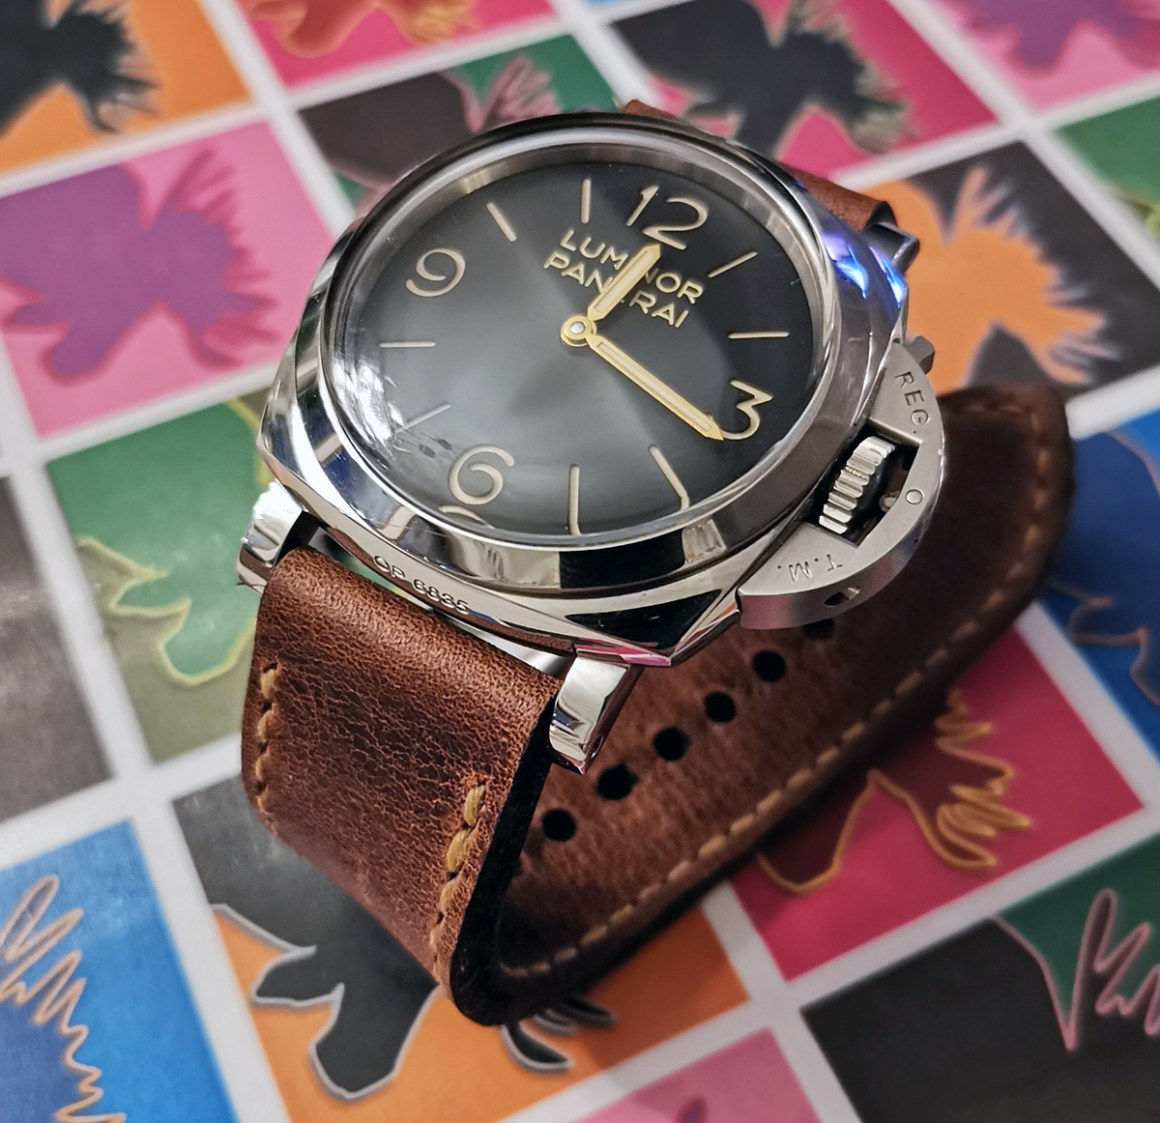 Panerai 372 on Phantom leather with buttersctoch stitching. © Peter Cassman